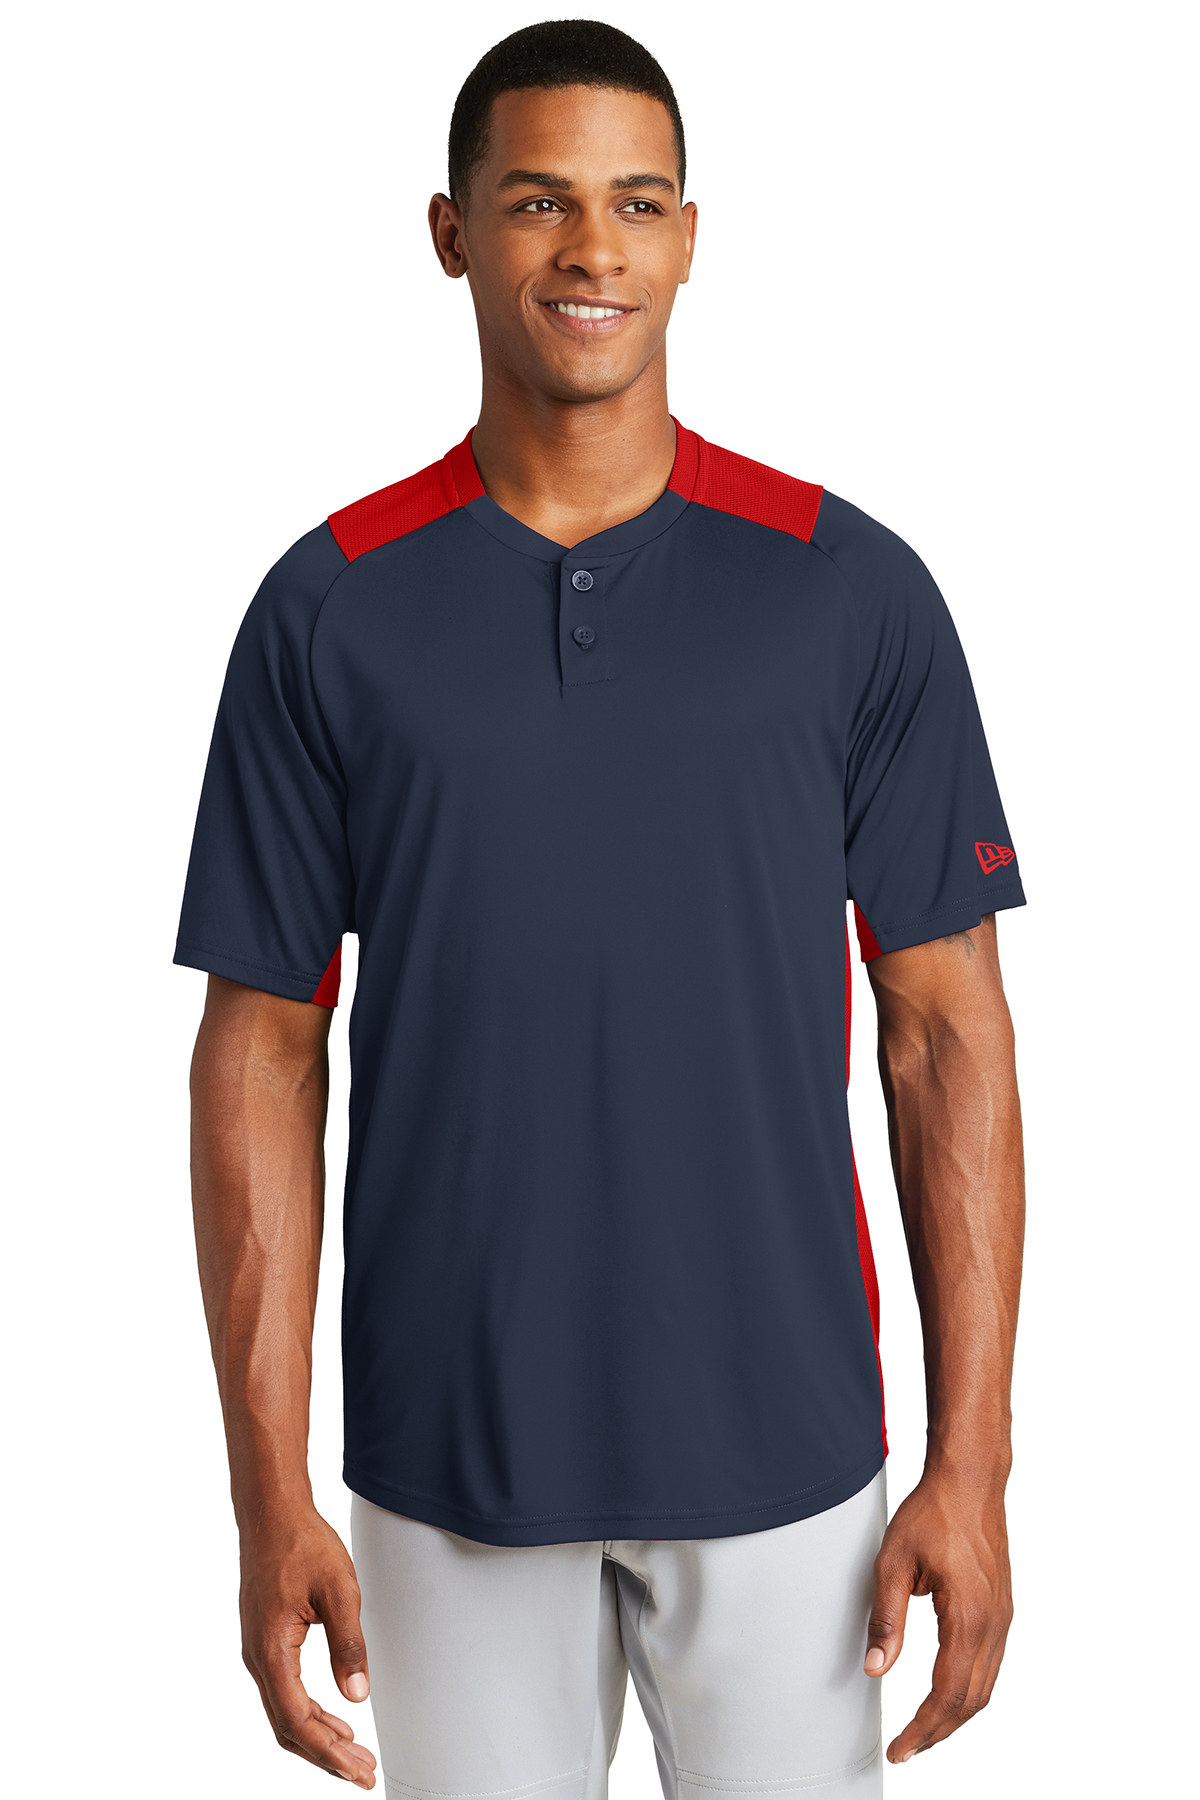 New Era NEA221 - Men's Diamond Era 2-Button Jersey